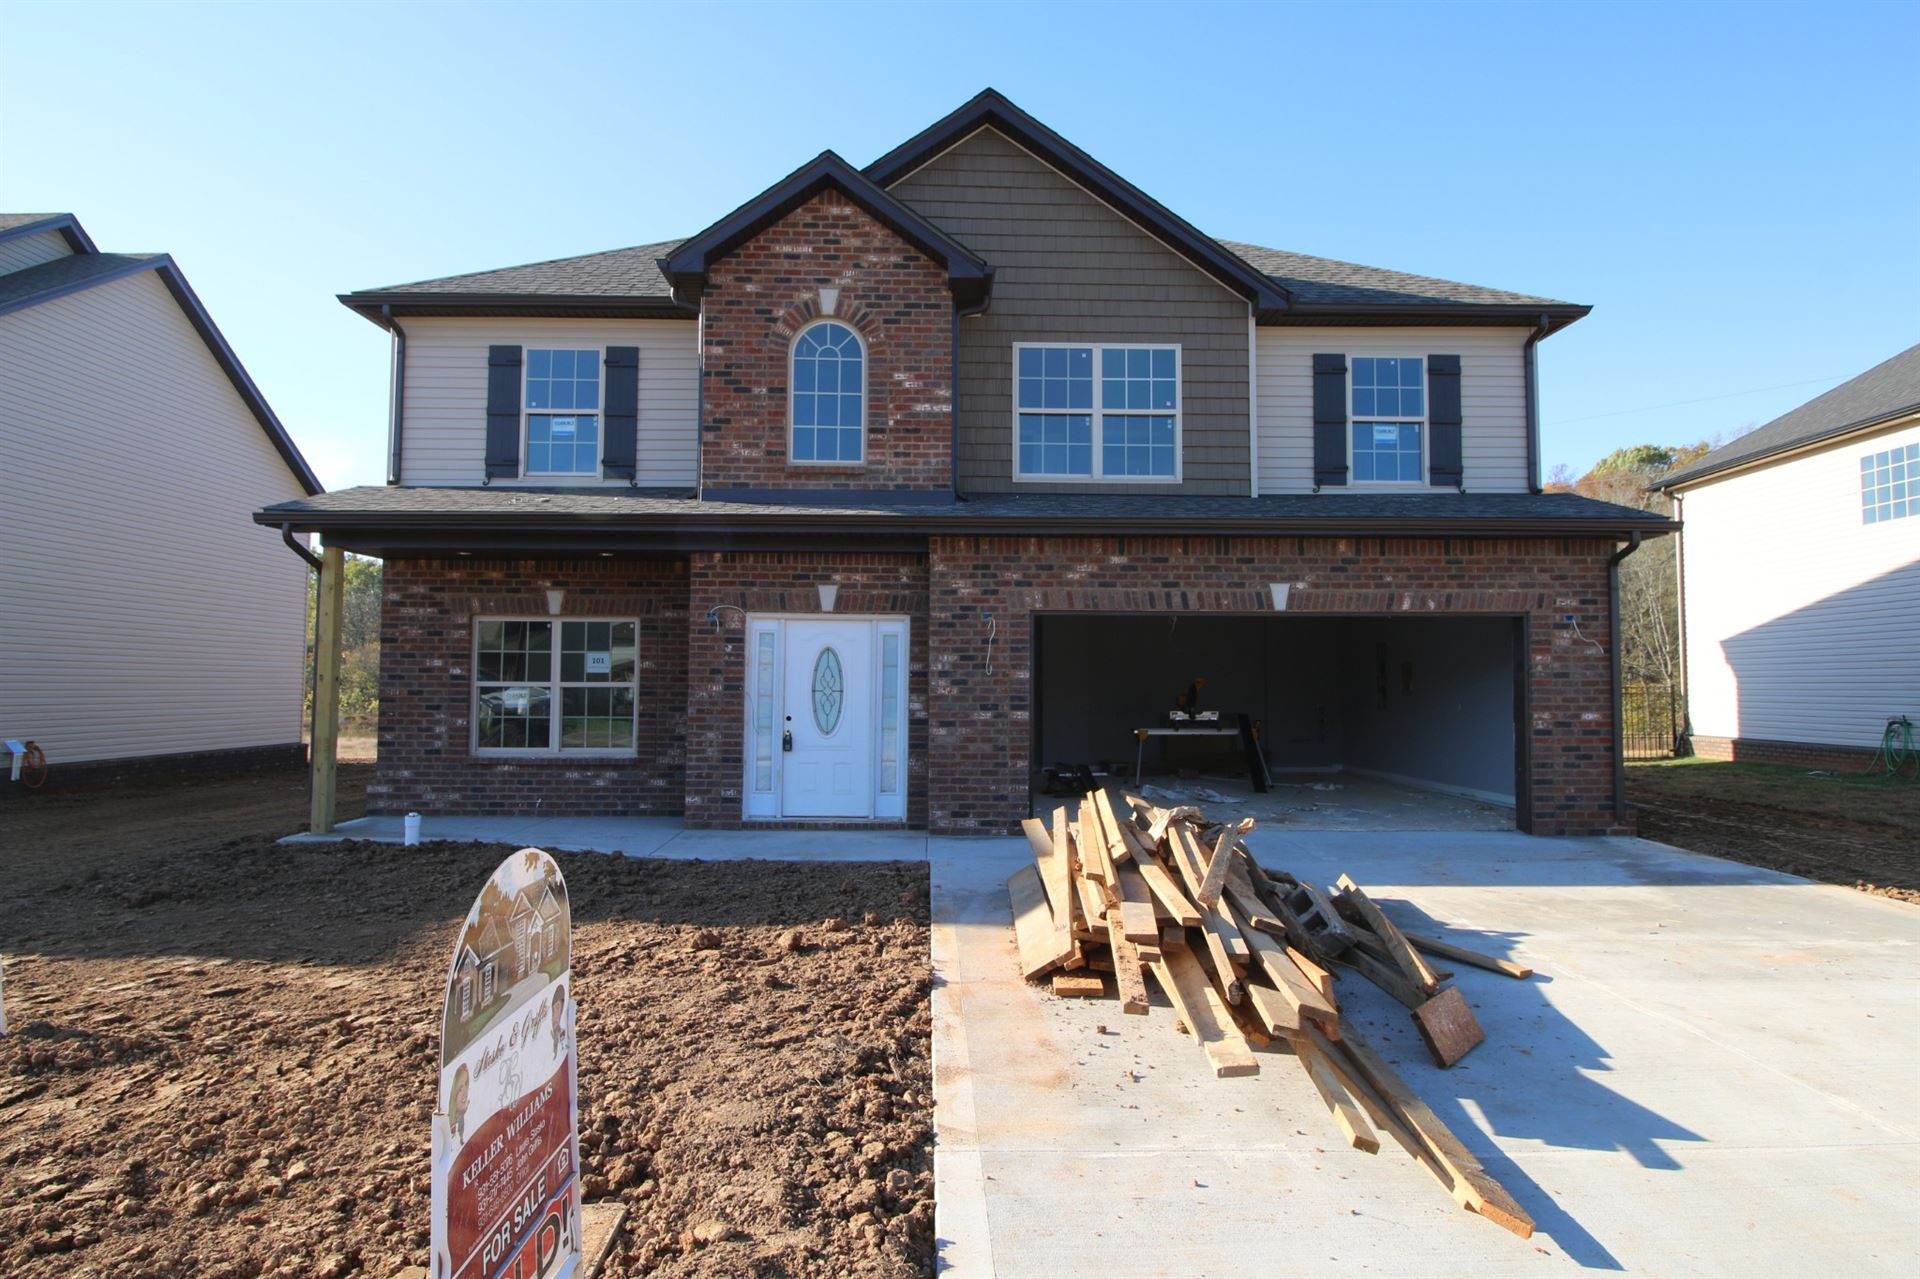 101 The Groves at Hearthstone, Clarksville, TN 37040 - MLS#: 2187000